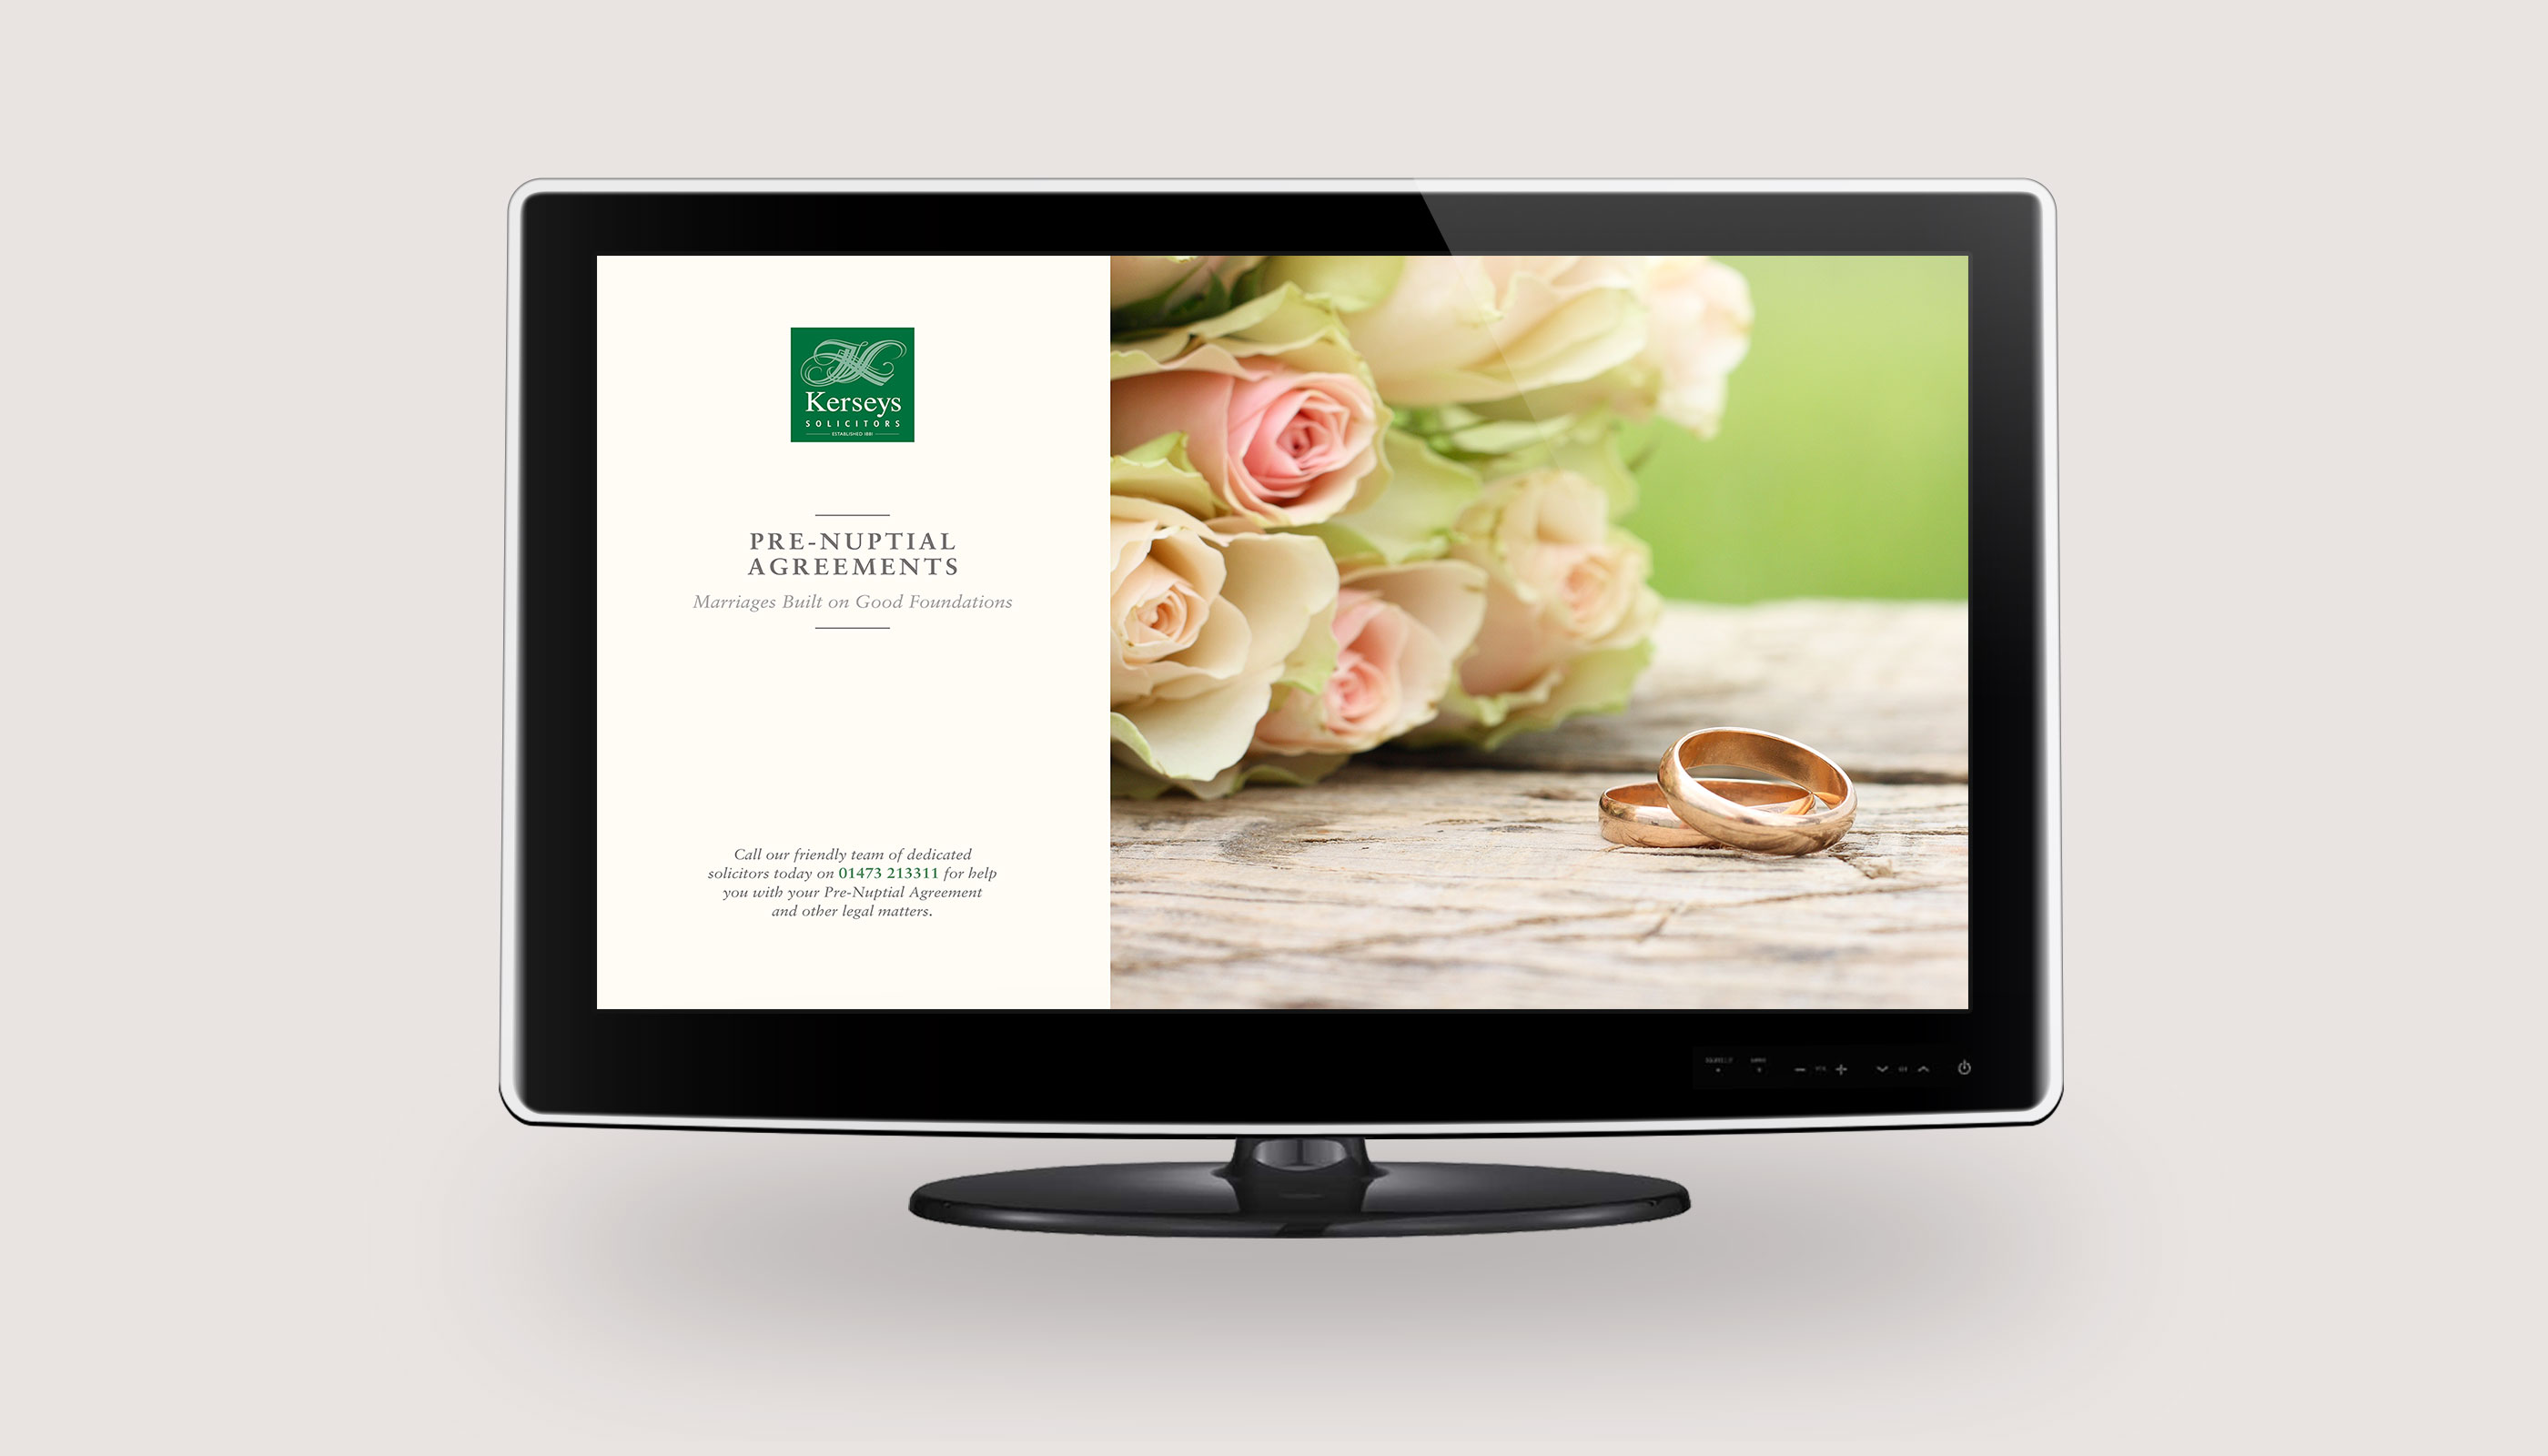 TV wallpaper advert design for Kerseys Solicitors in Ipswich, Suffolk.